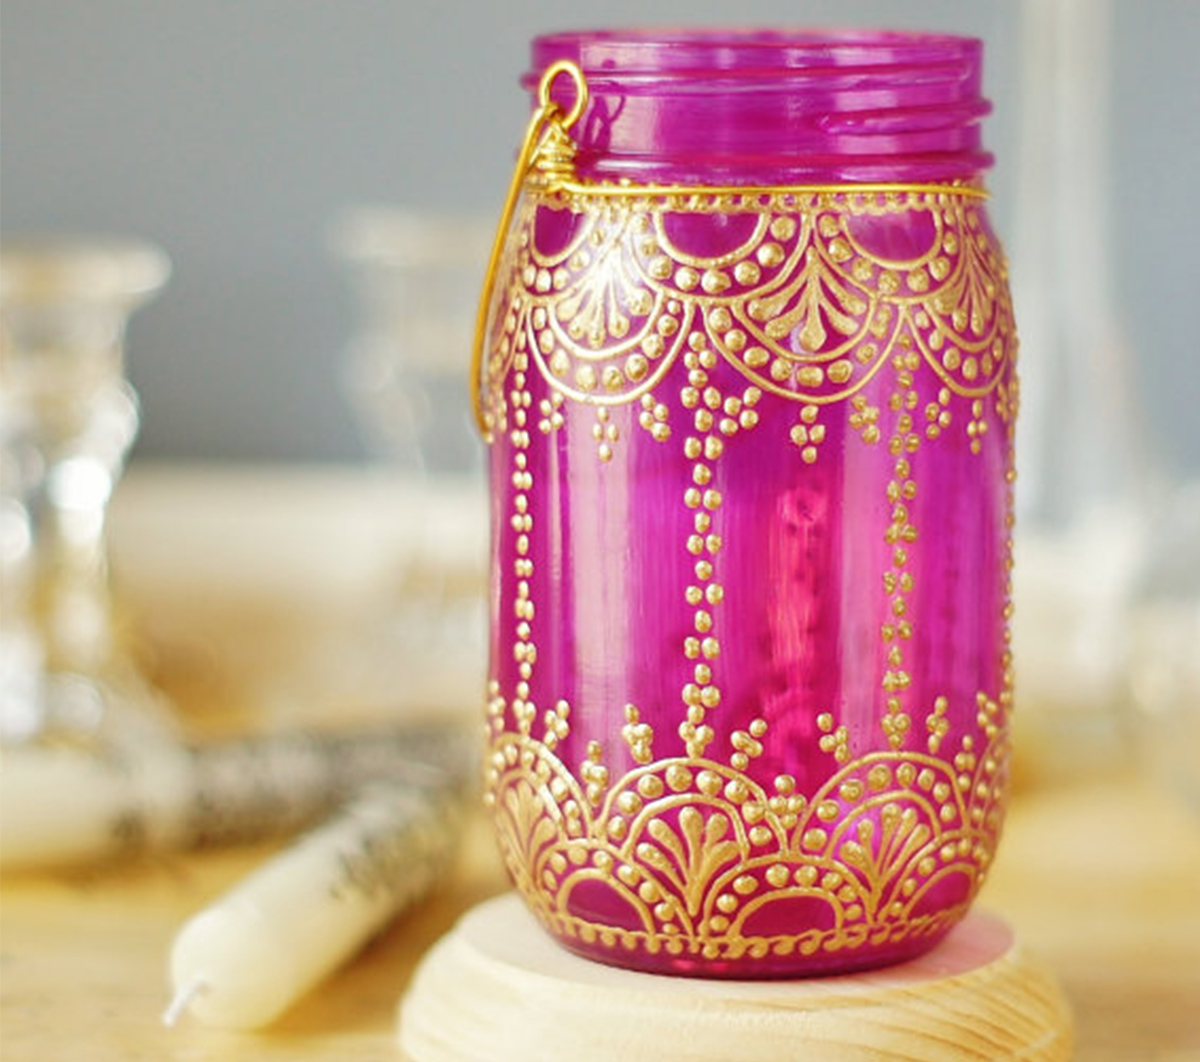 Diy Mason Jar Design Decorating Ideas: Awesome Hacks For Mason Jars